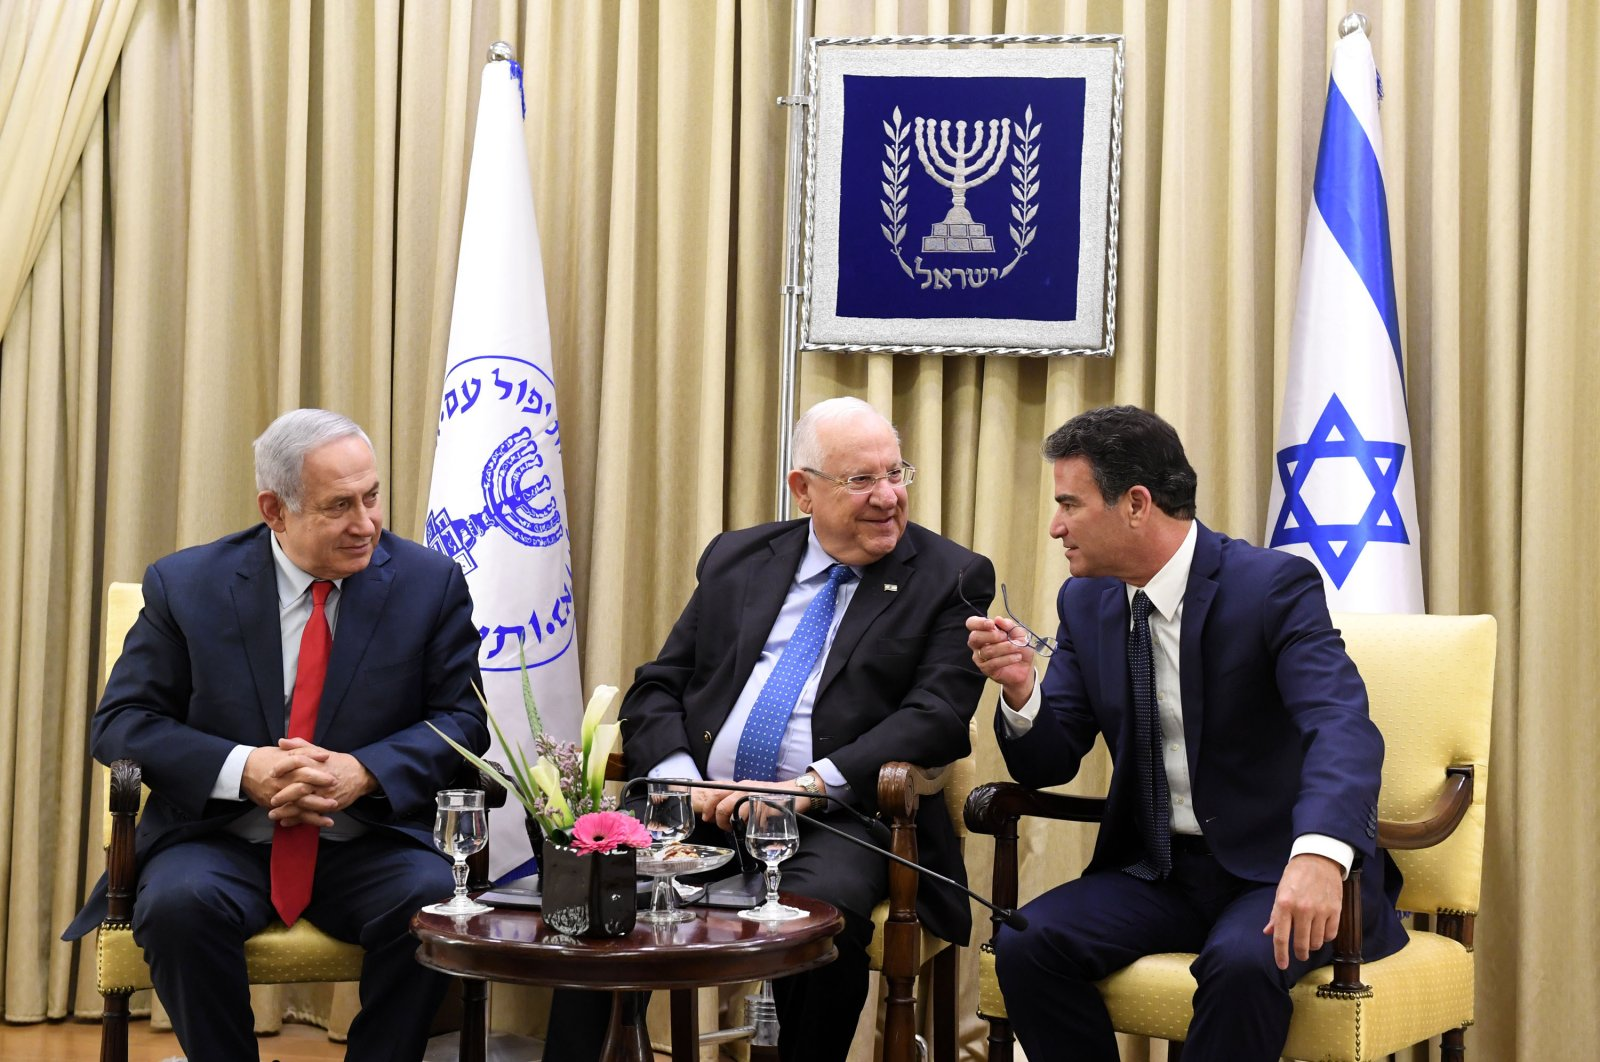 Israel's President Reuven Rivlin (C), Prime Minister Benjamin Netanyahu (L) and the head of the Mossad Yossi Cohen (R) award certificates to Mossad employees. (Photo: Kobi Gideon / GPO Israel)